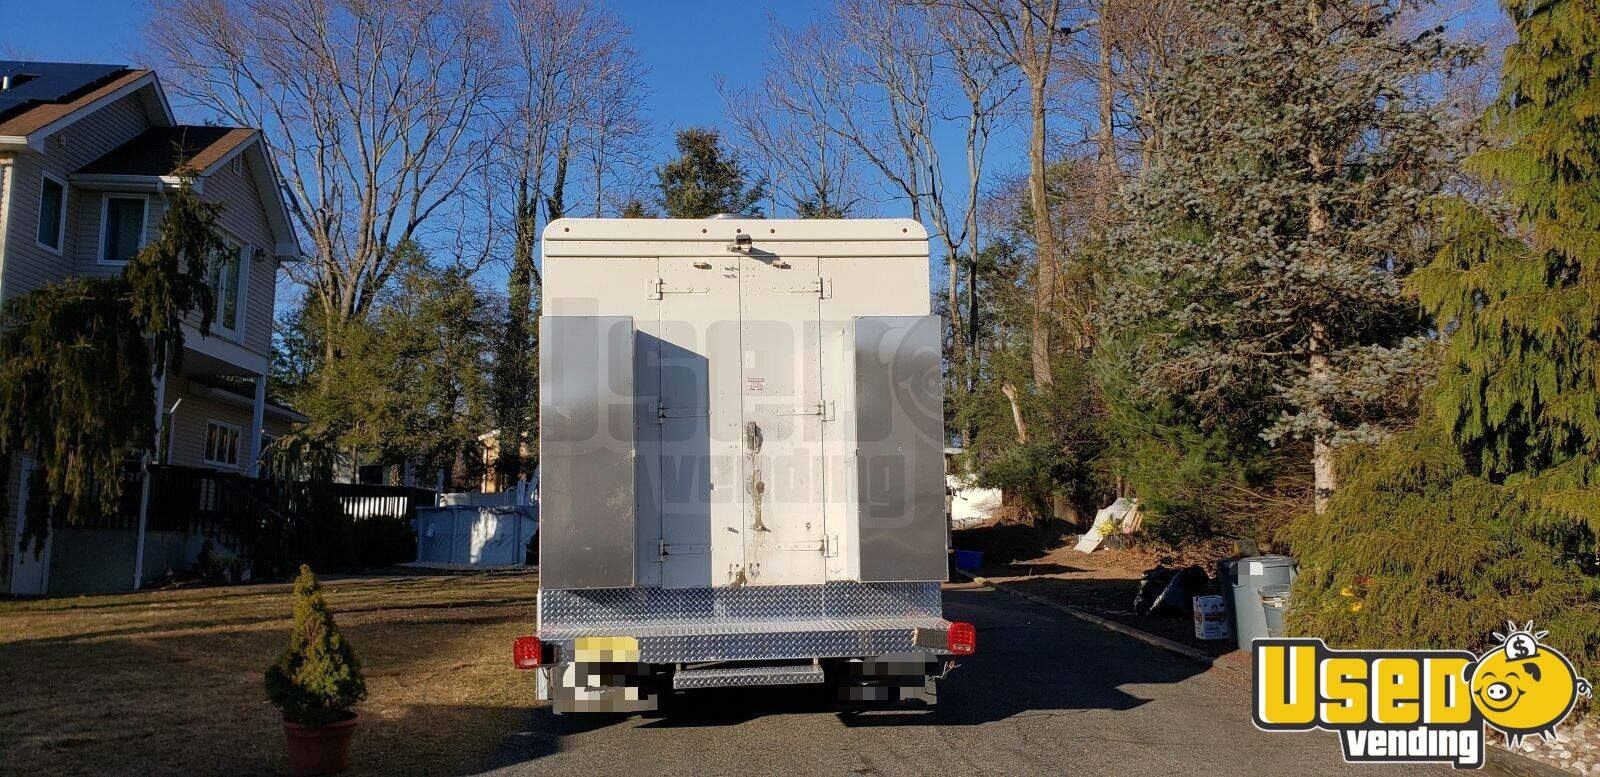 2011 Workhorse All-purpose Food Truck Stainless Steel Wall Covers New Jersey Diesel Engine for Sale - 4